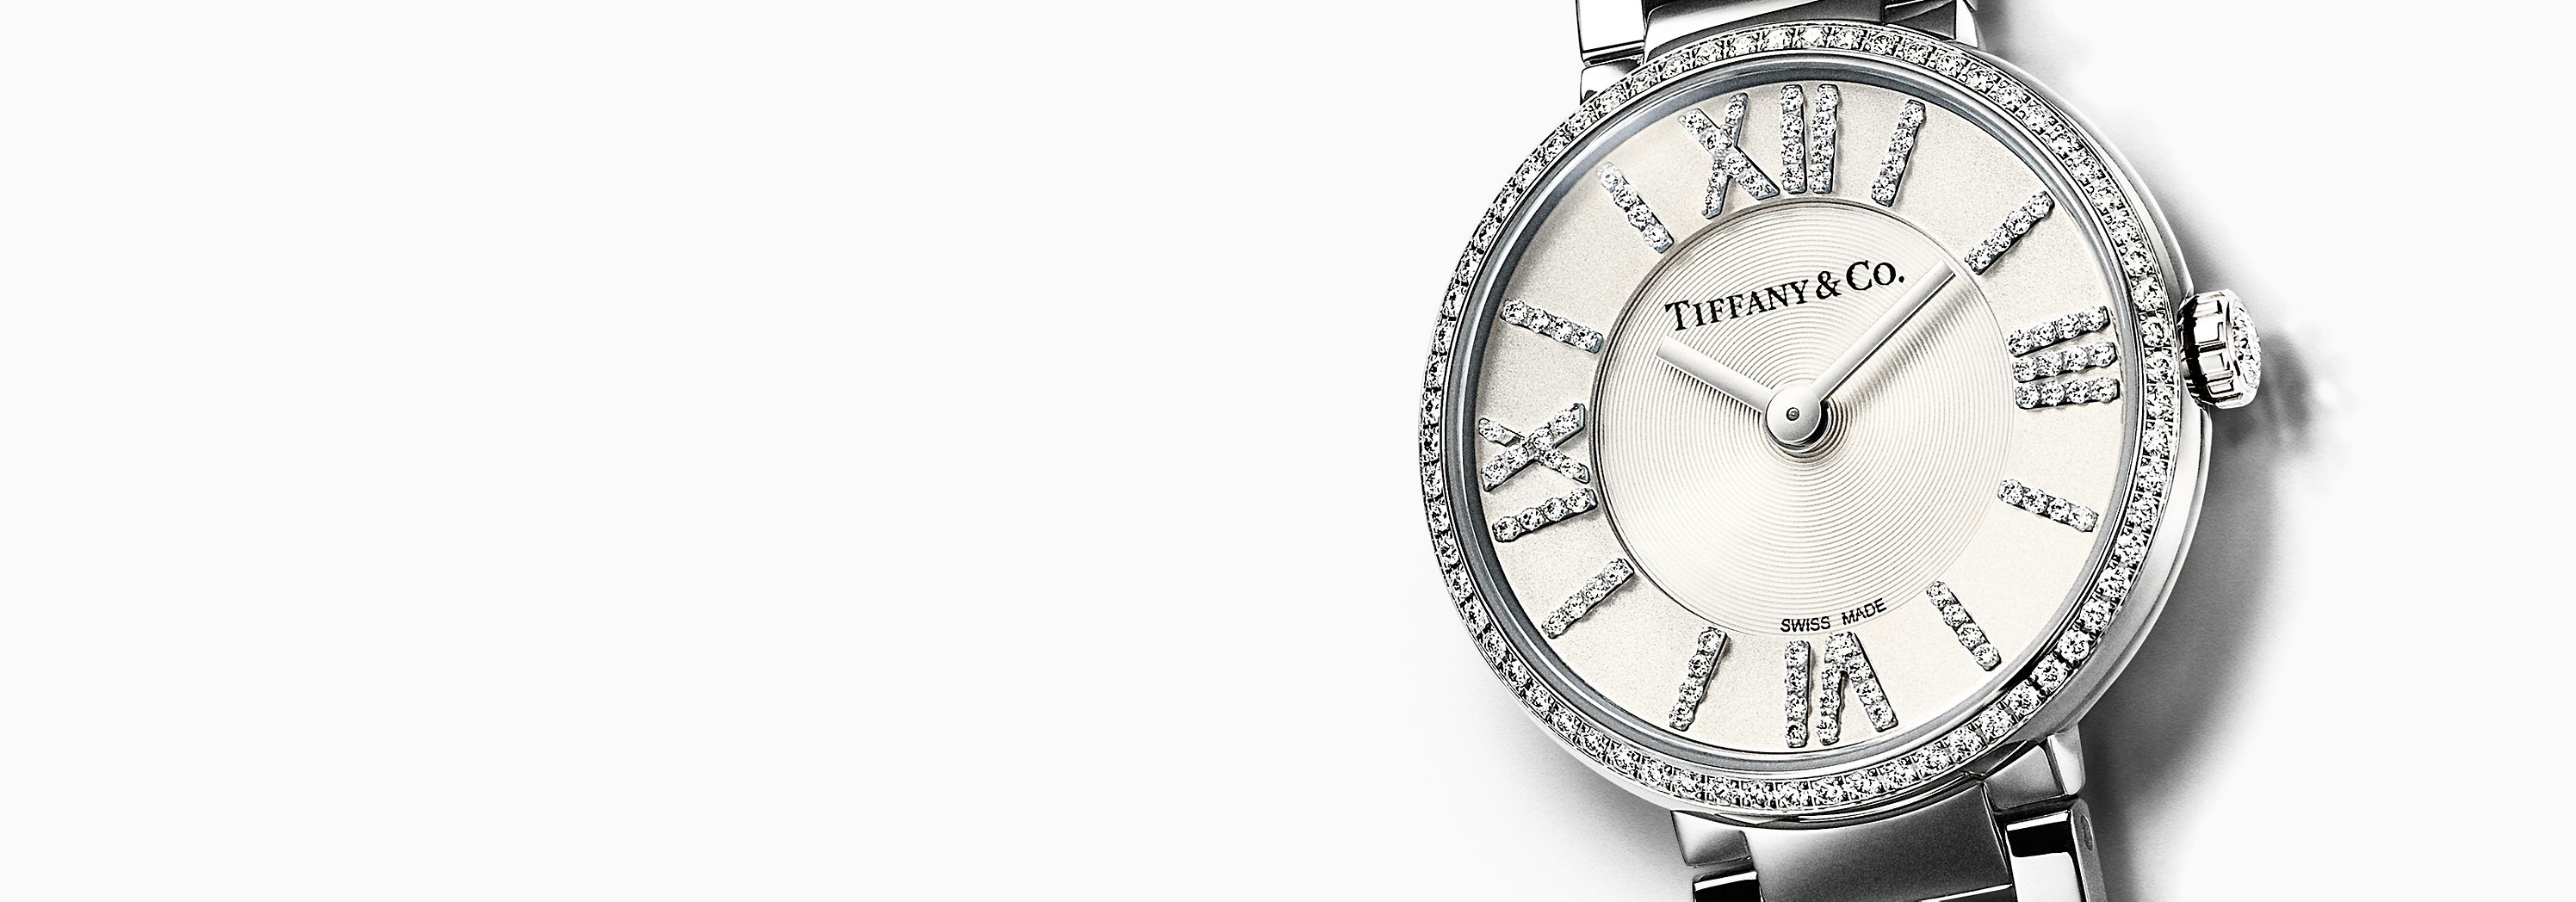 Browse Tiffany & Co. Atlas? Watches